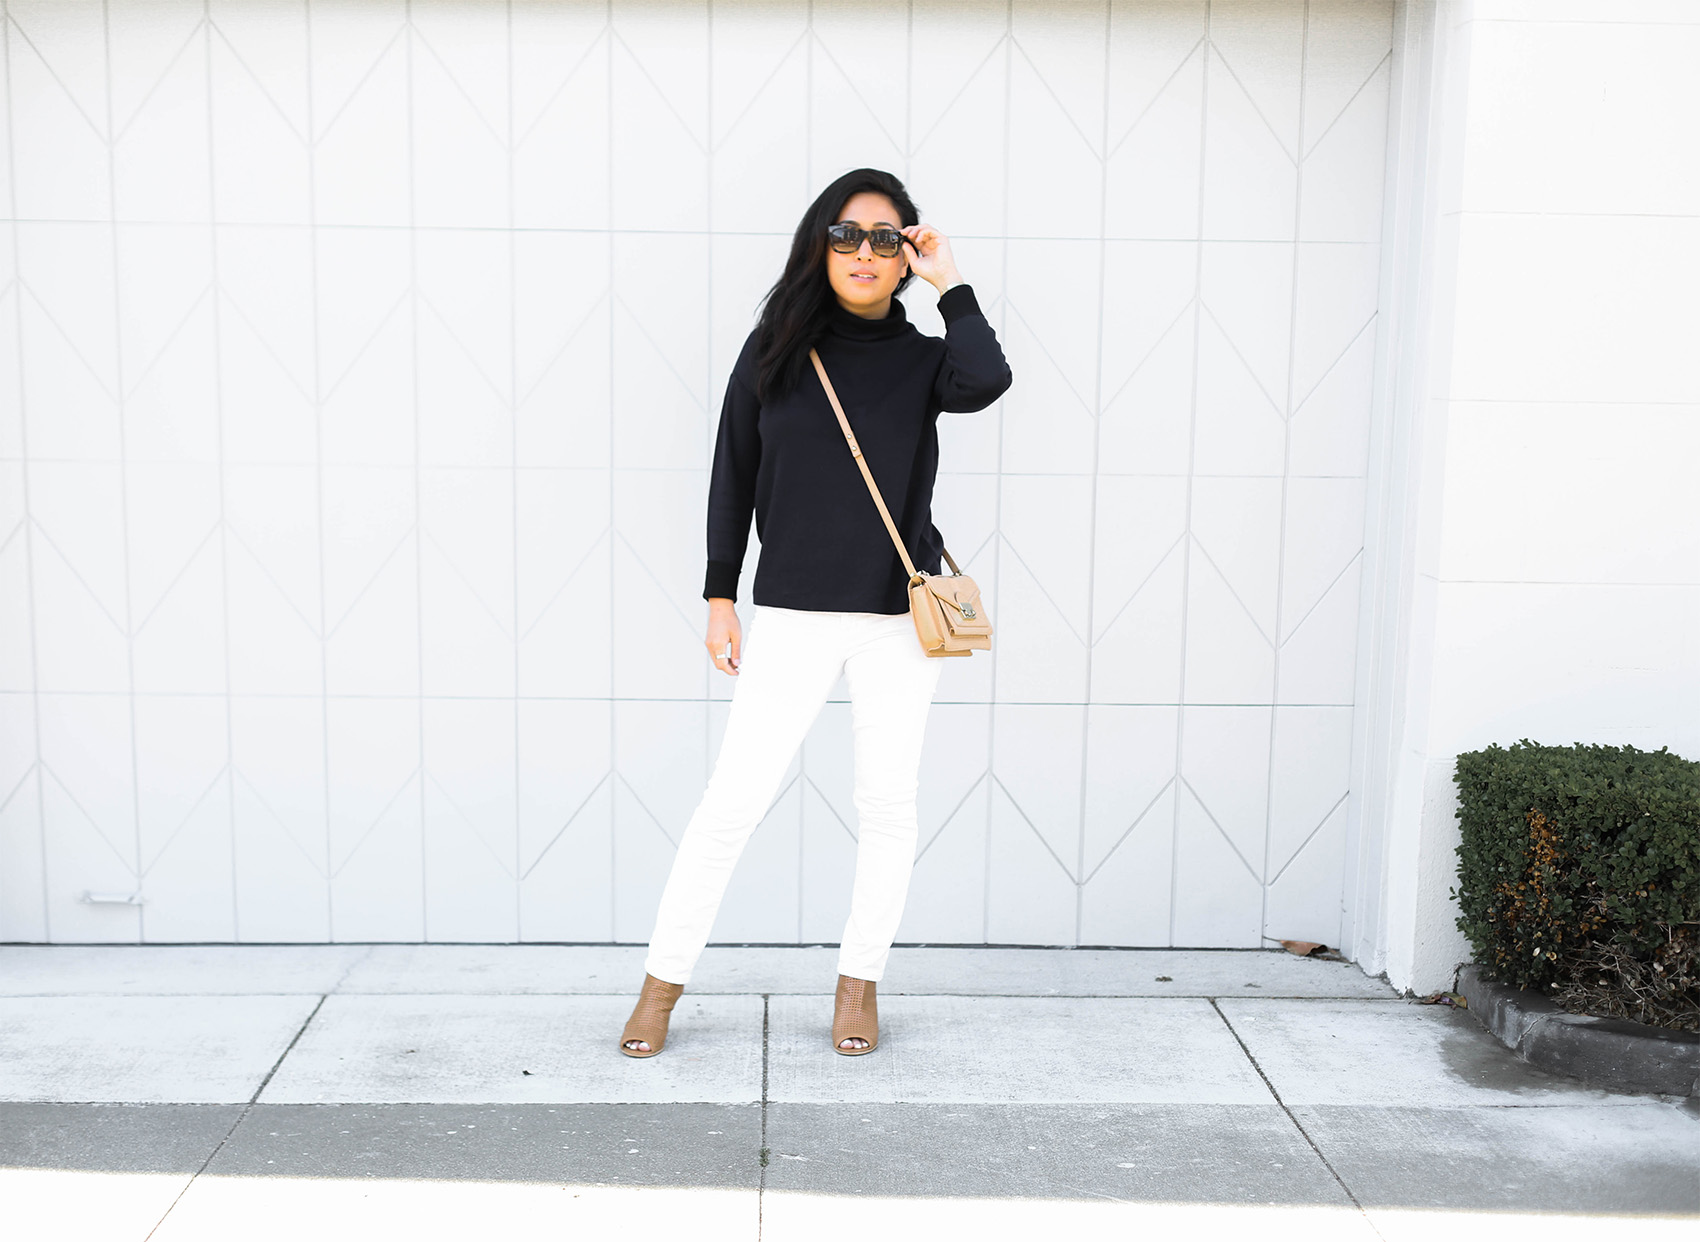 @victoriamstudio | details- Everlane double knit cotton turtleneck, j brand white jeans, steve madden suzy booties, loeffler randall mini rider bag